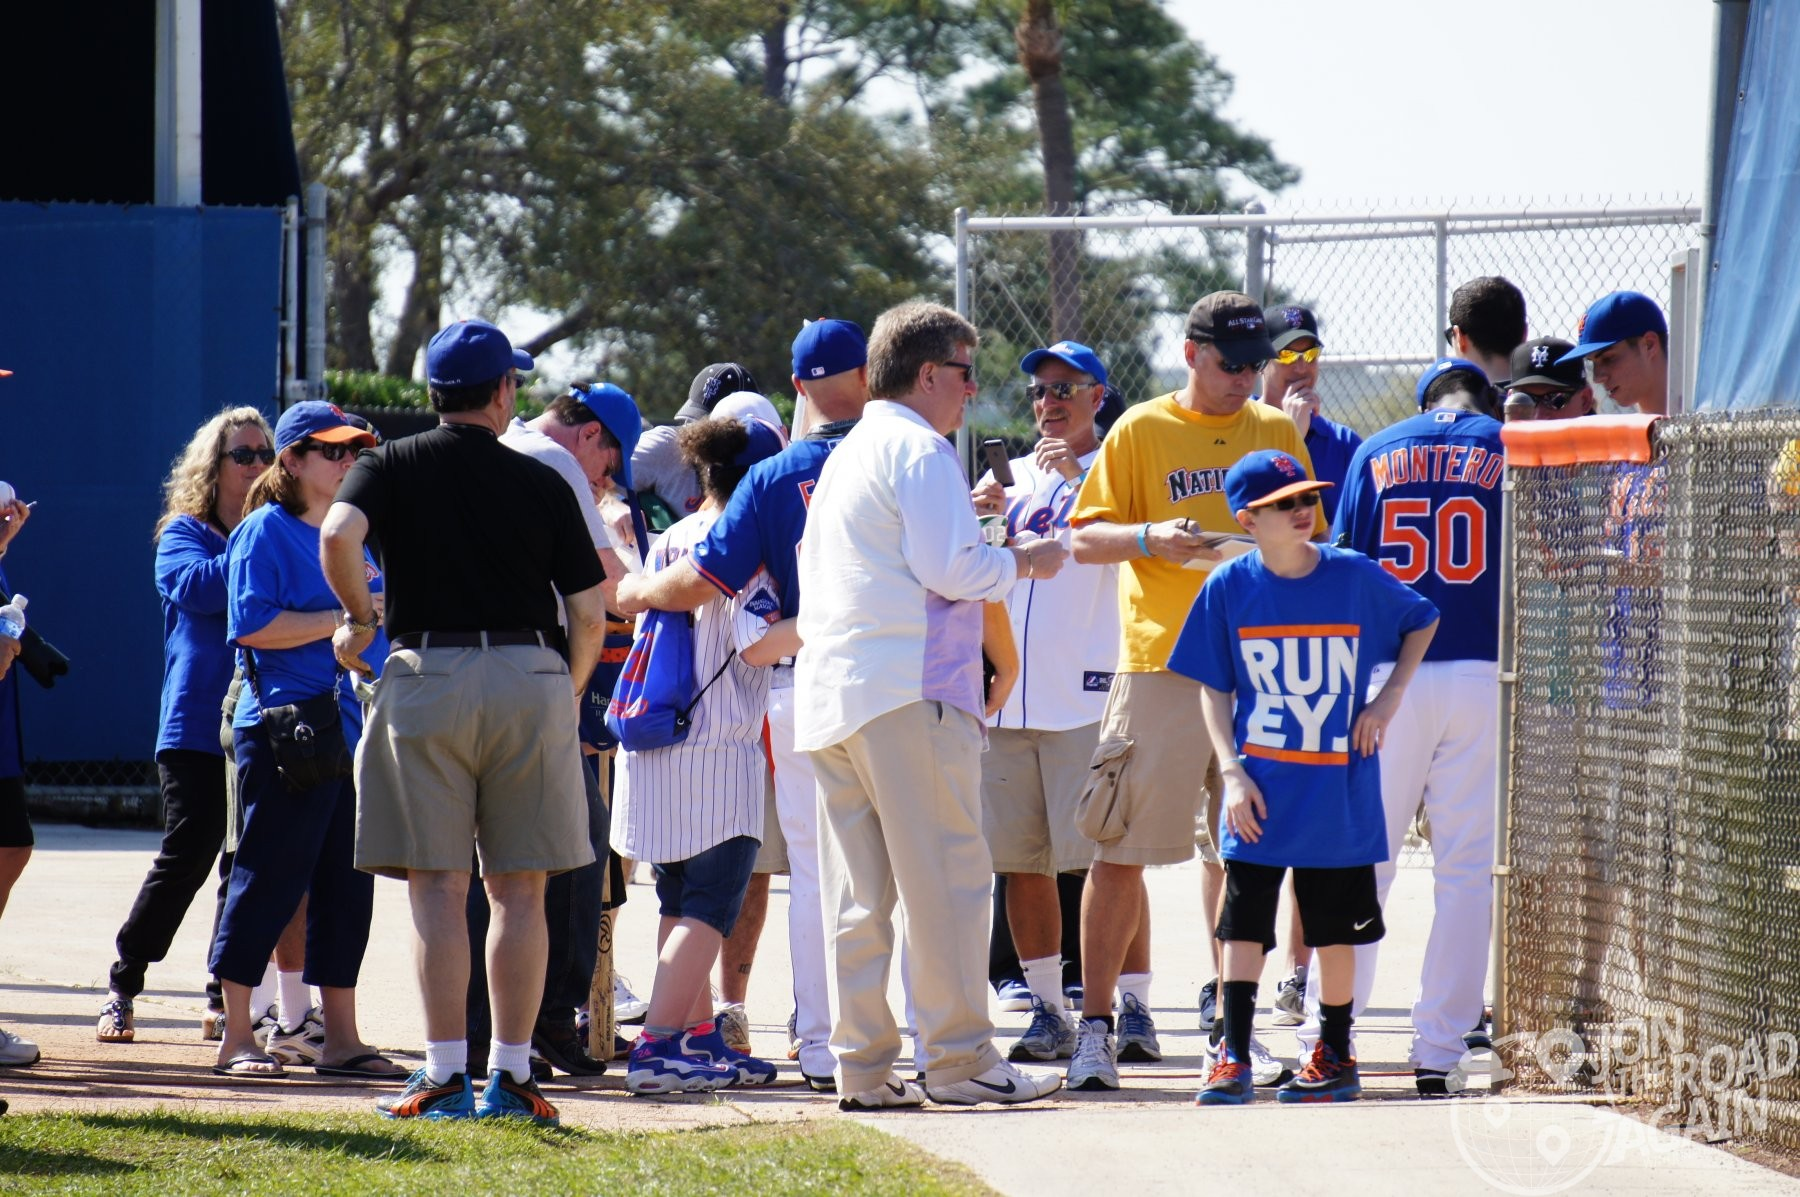 Autographs at Tradition Field